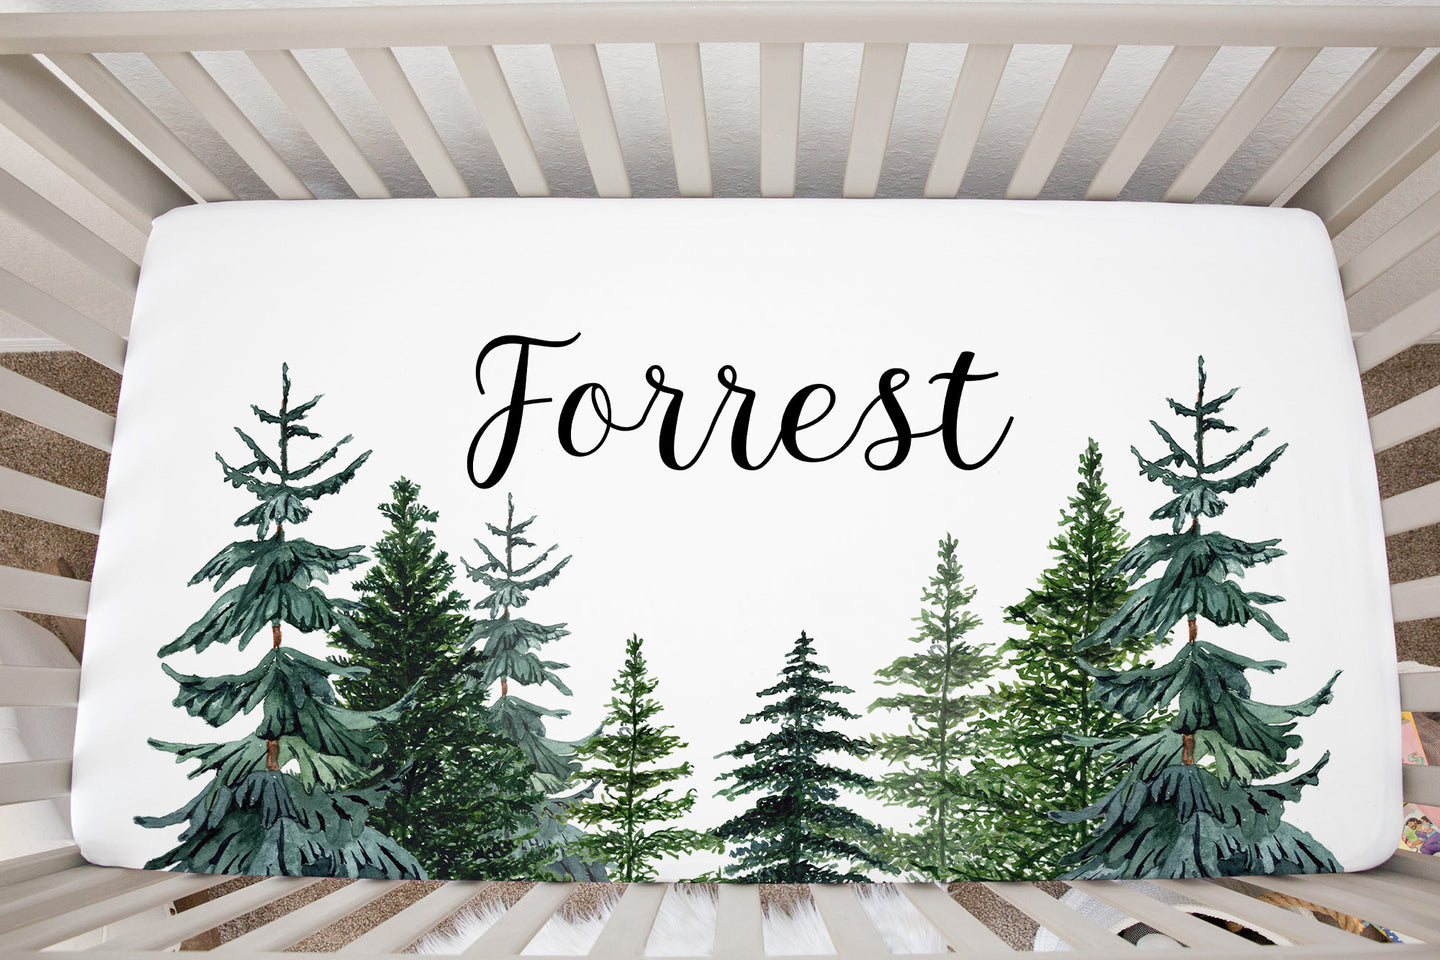 Pine Trees Personalized Minky Crib Sheet, Forest Nursery Bedding - The Forest